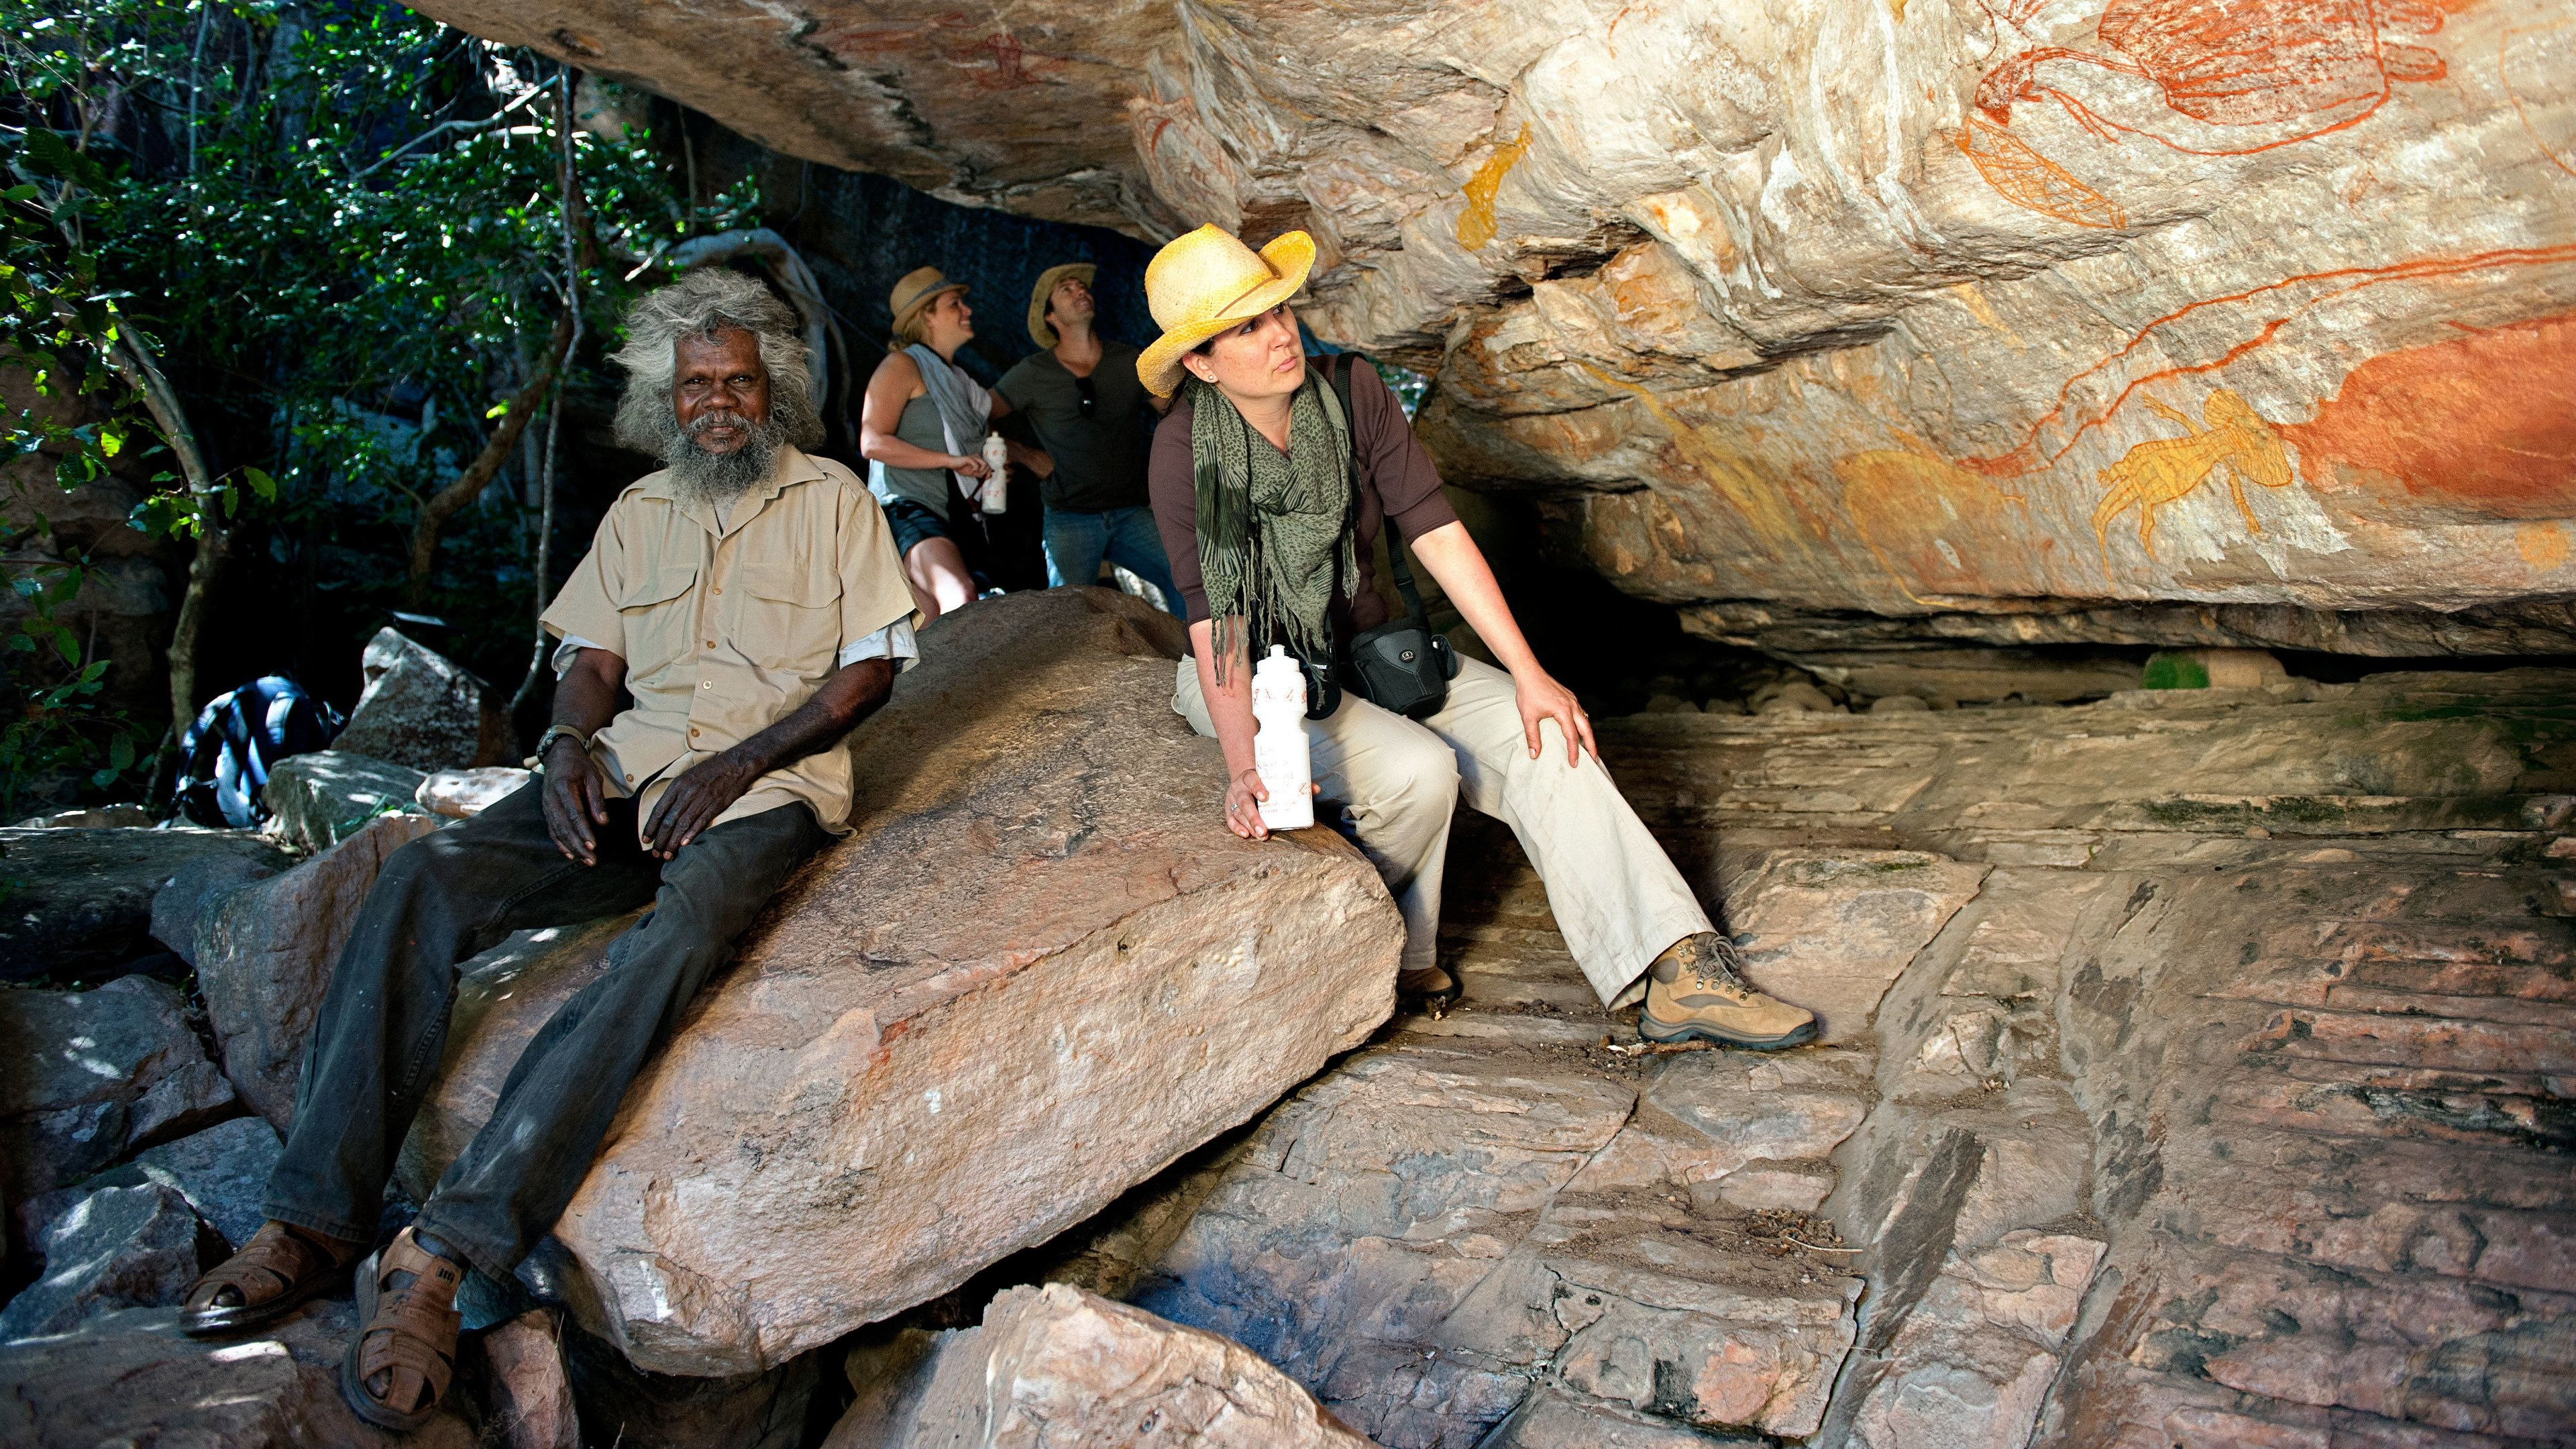 Tour group looking at rocks with ancient drawings